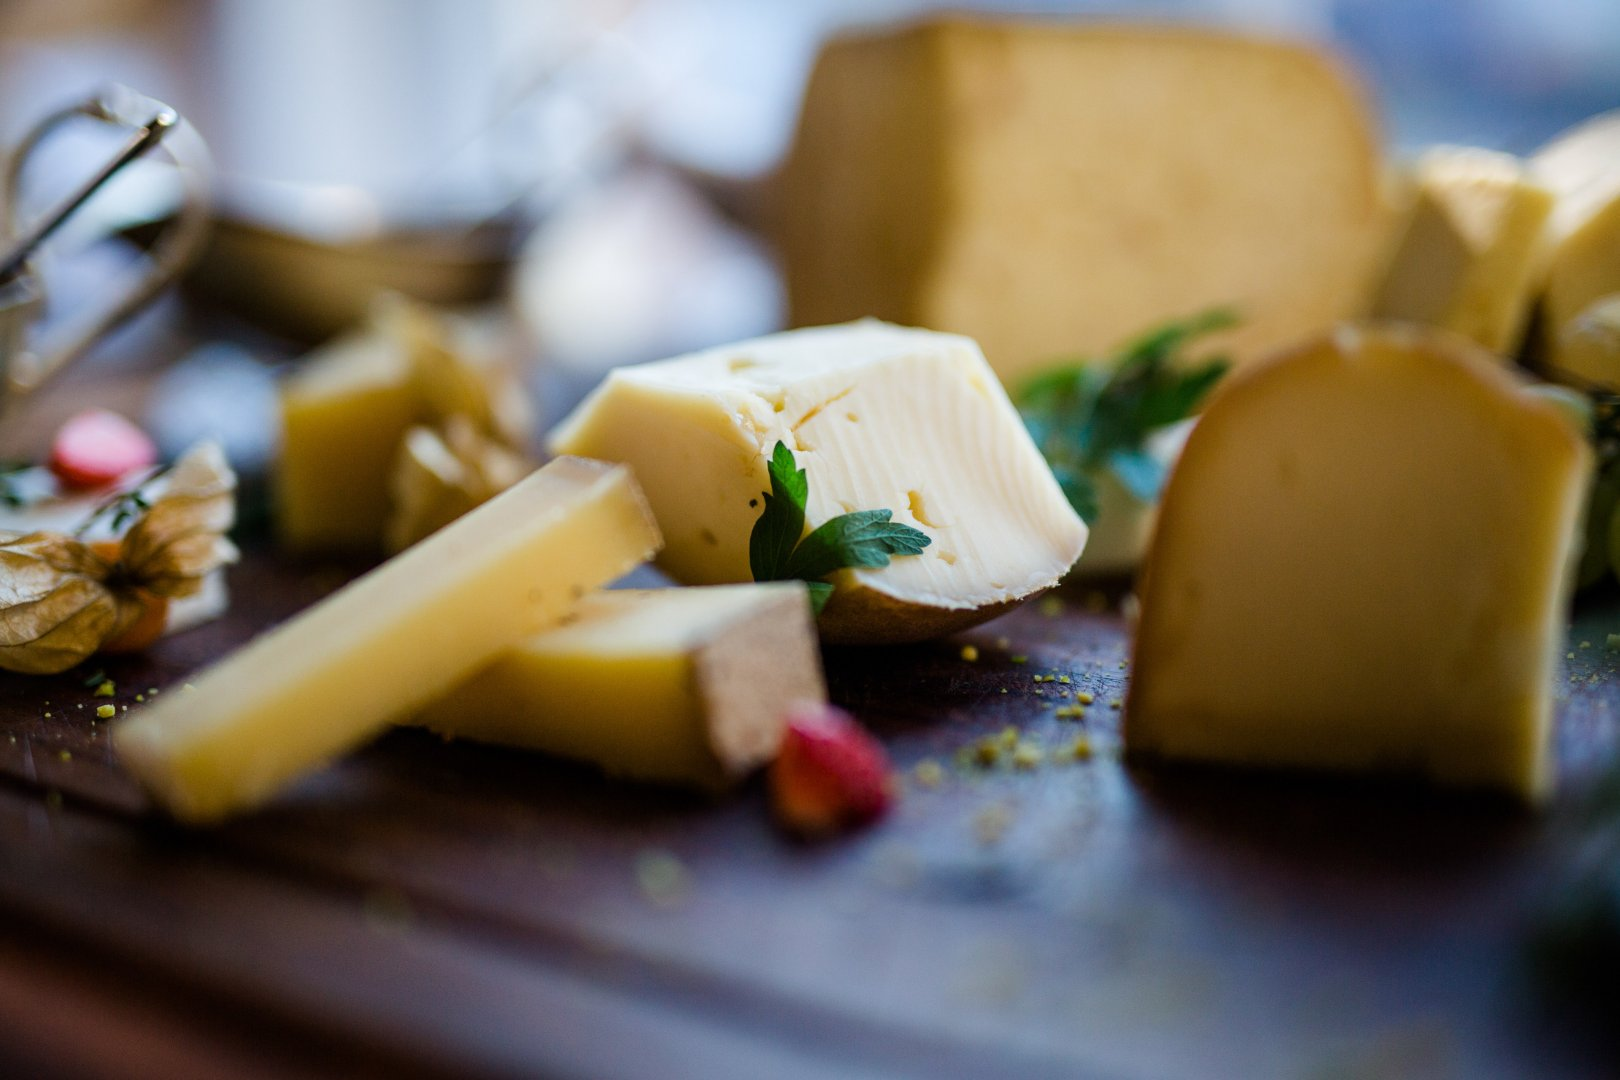 Food Ingredient Cuisine Dish Cheese Cheddar cheese Dairy Vegetarian food Feta À la carte food Goat cheese Limburger cheese Recipe Comfort food Produce Grana padano Provolone Pecorino romano Canapé Brunch Camembert Cheese Vegetable Gruyère cheese